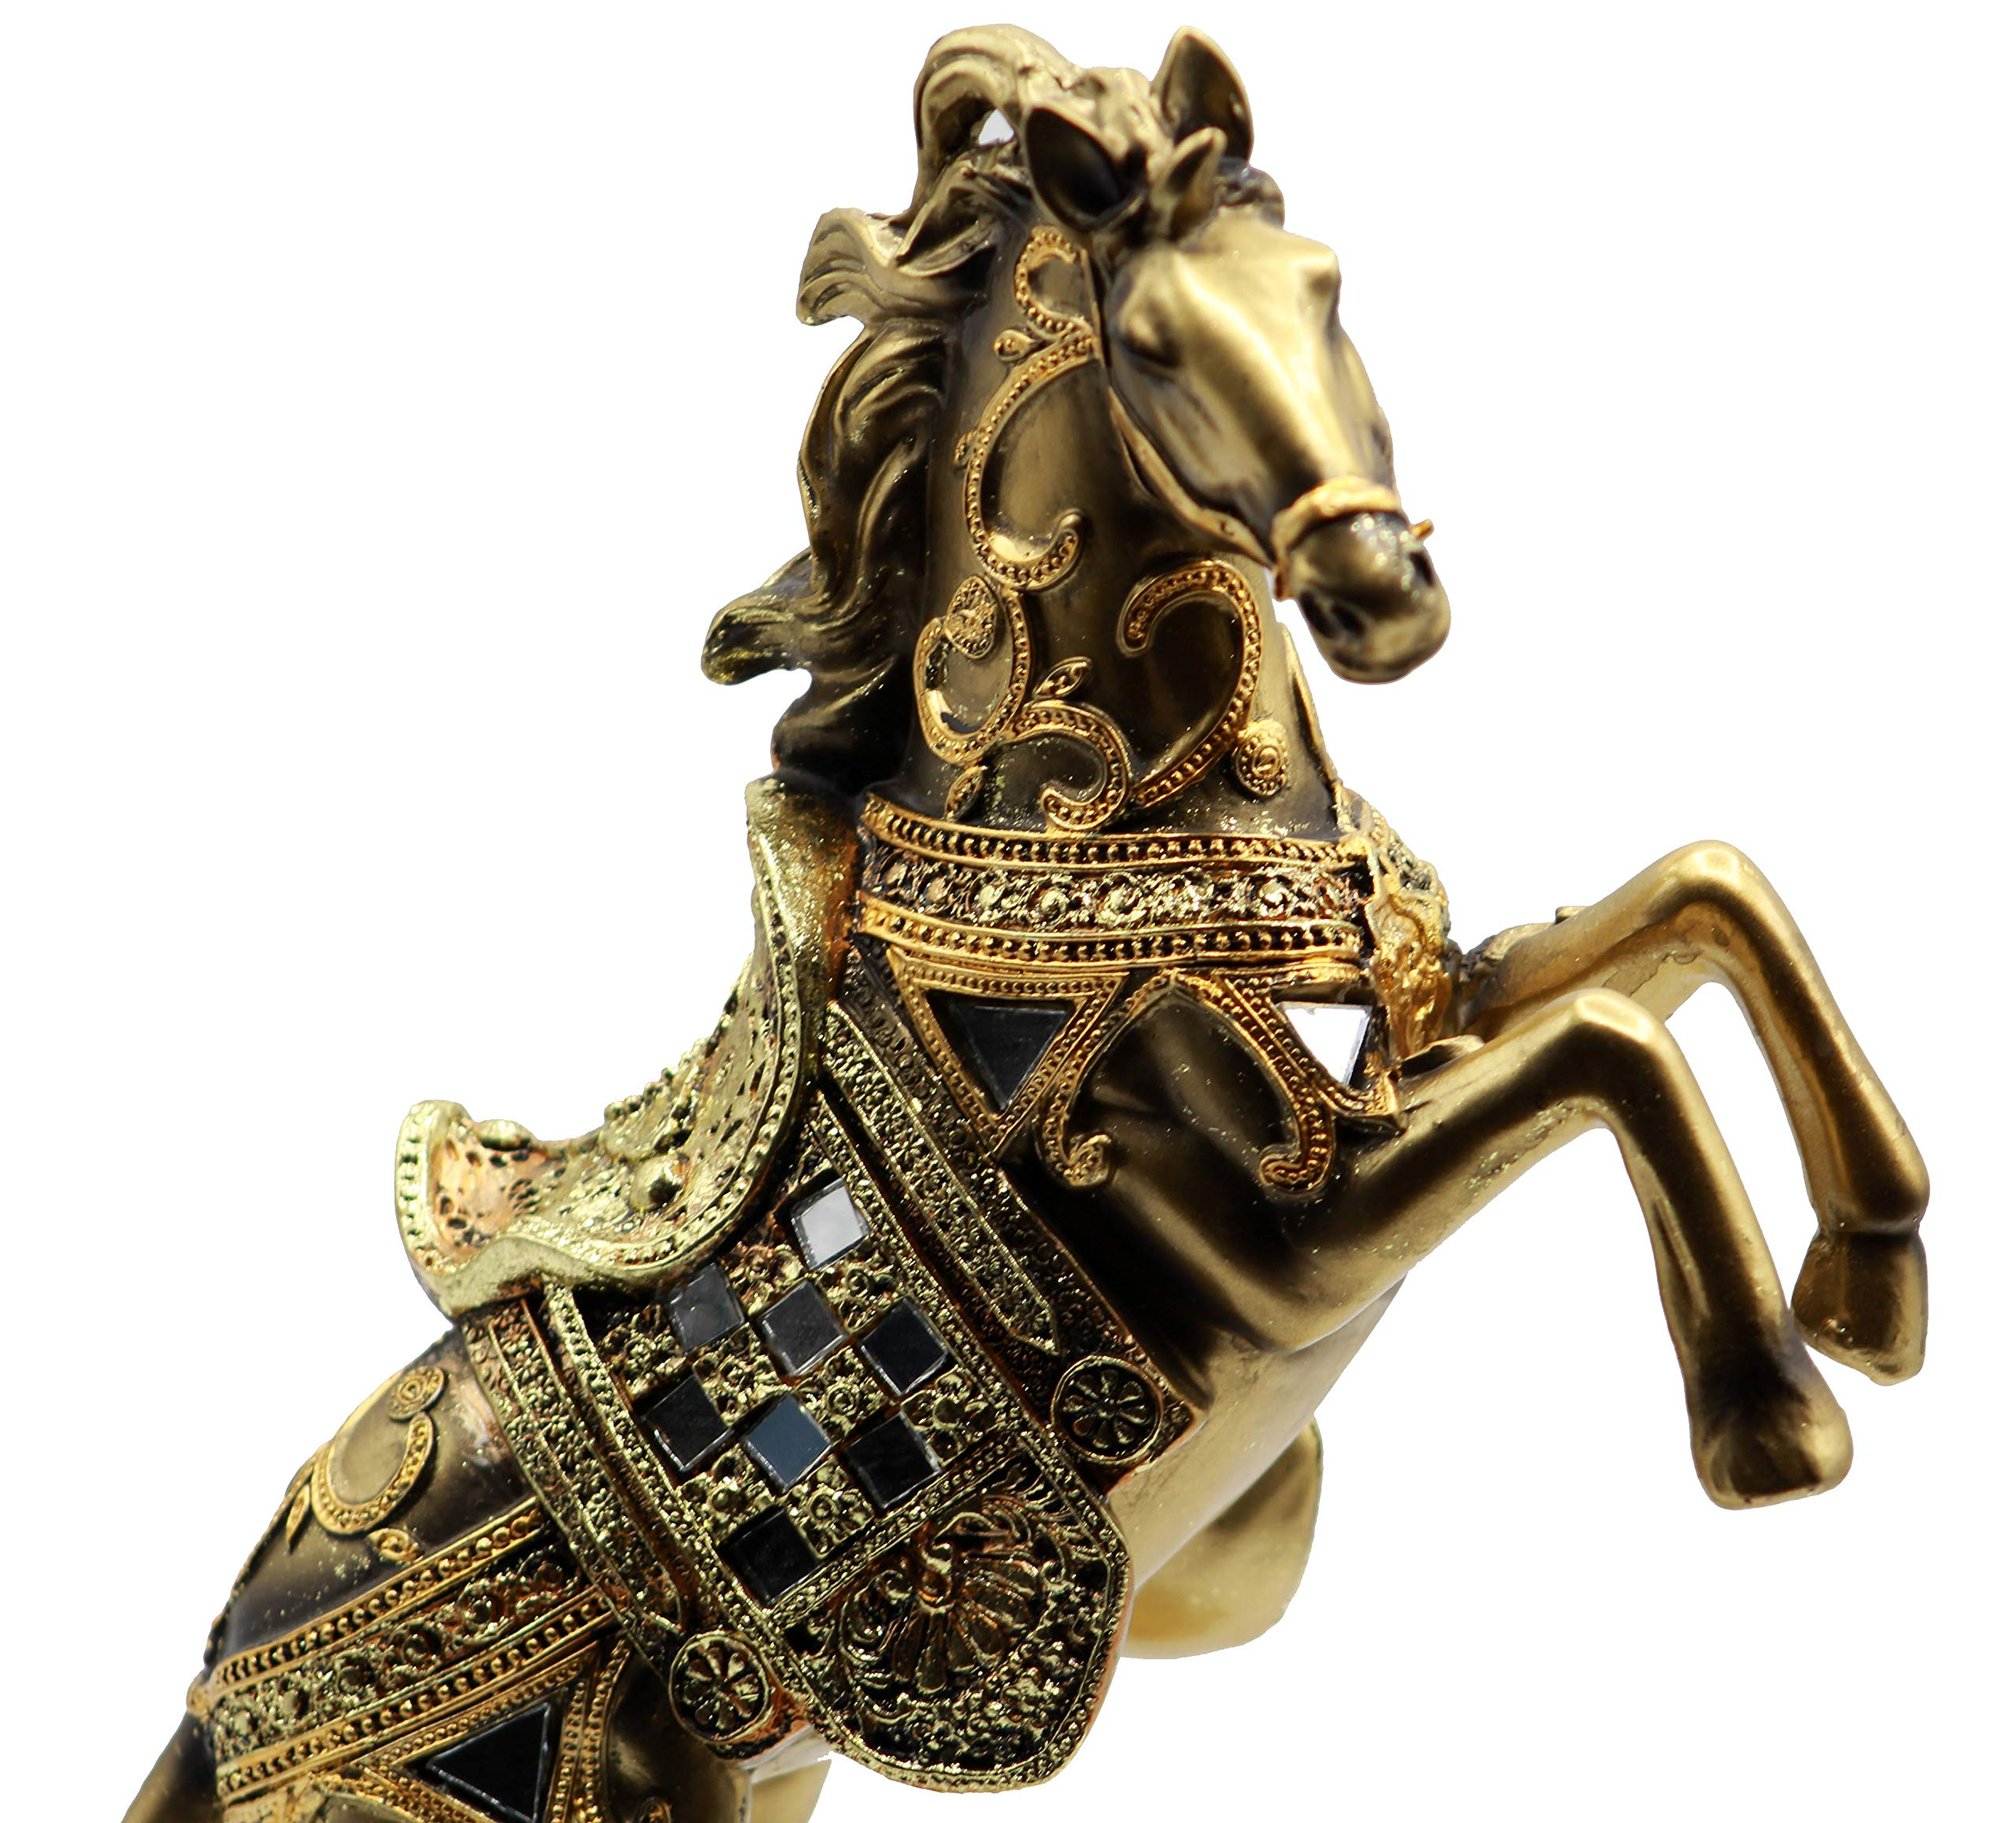 Buy Gold HorseProducts Now!